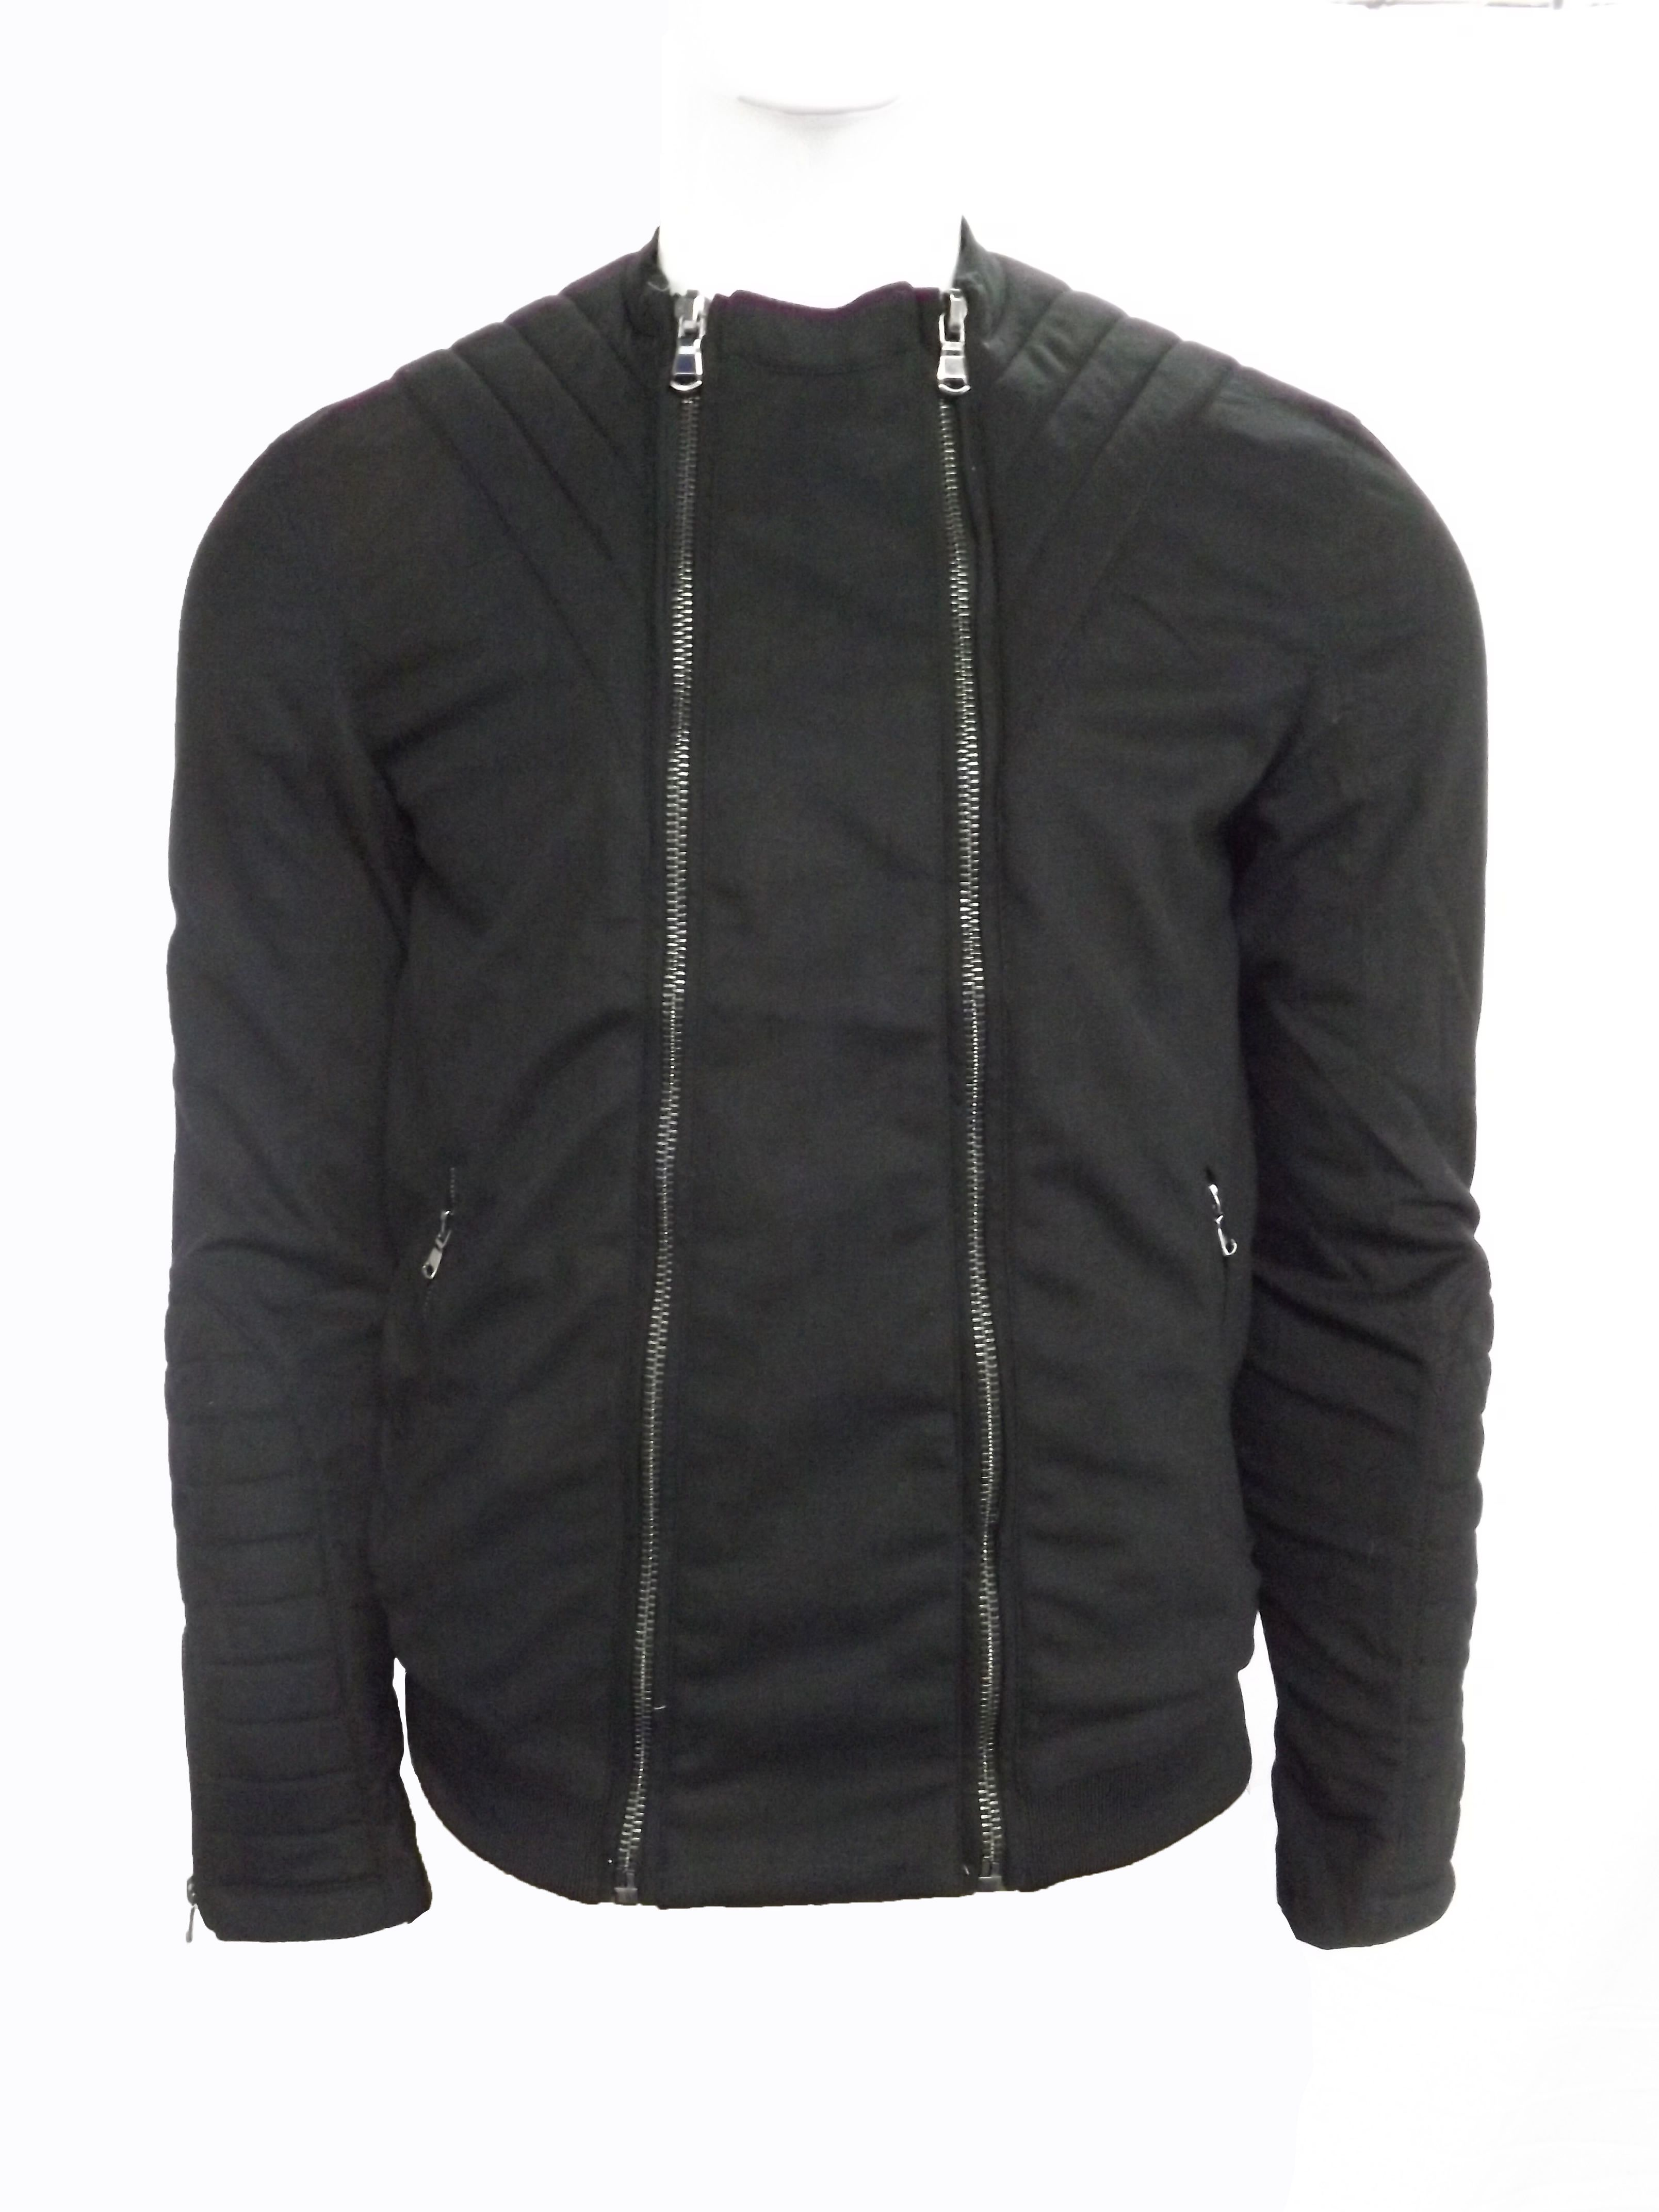 Zara Mens Dual Zip Biker Jacket . You can purchase it on